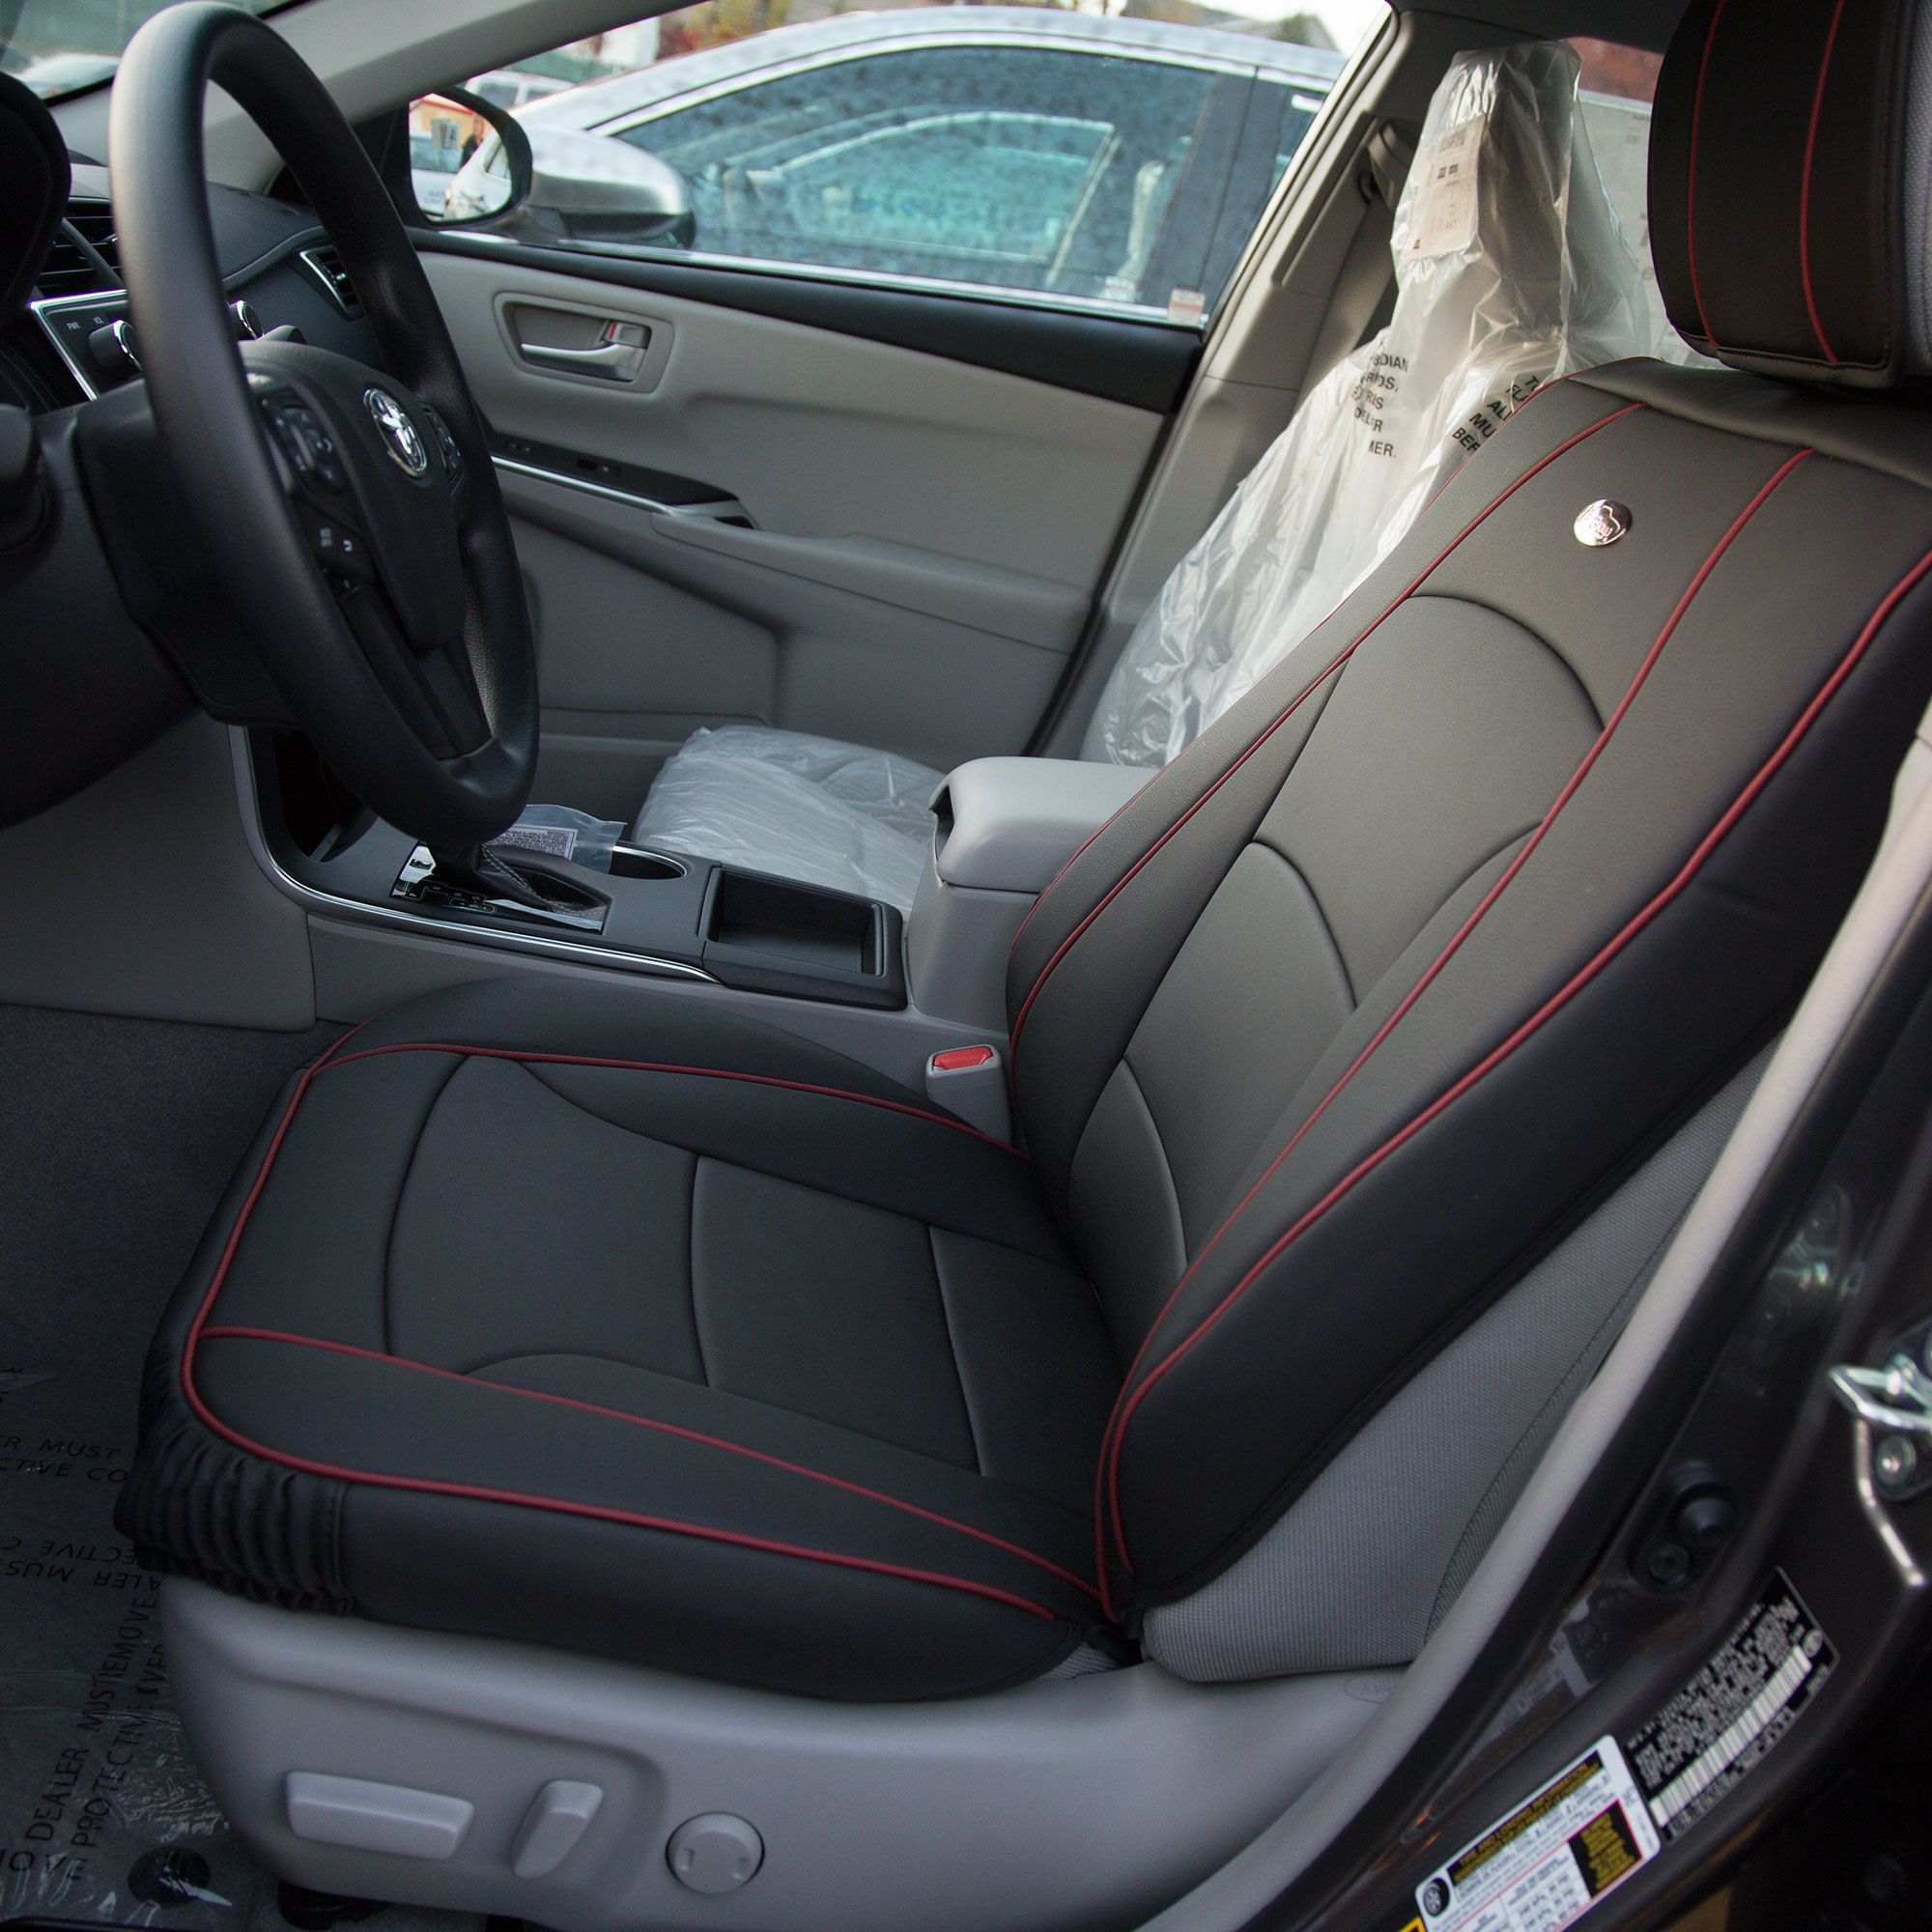 Luxury-Leather-Seat-Cushion-Covers-Front-Bucket-Pair-11-Color-Options thumbnail 17